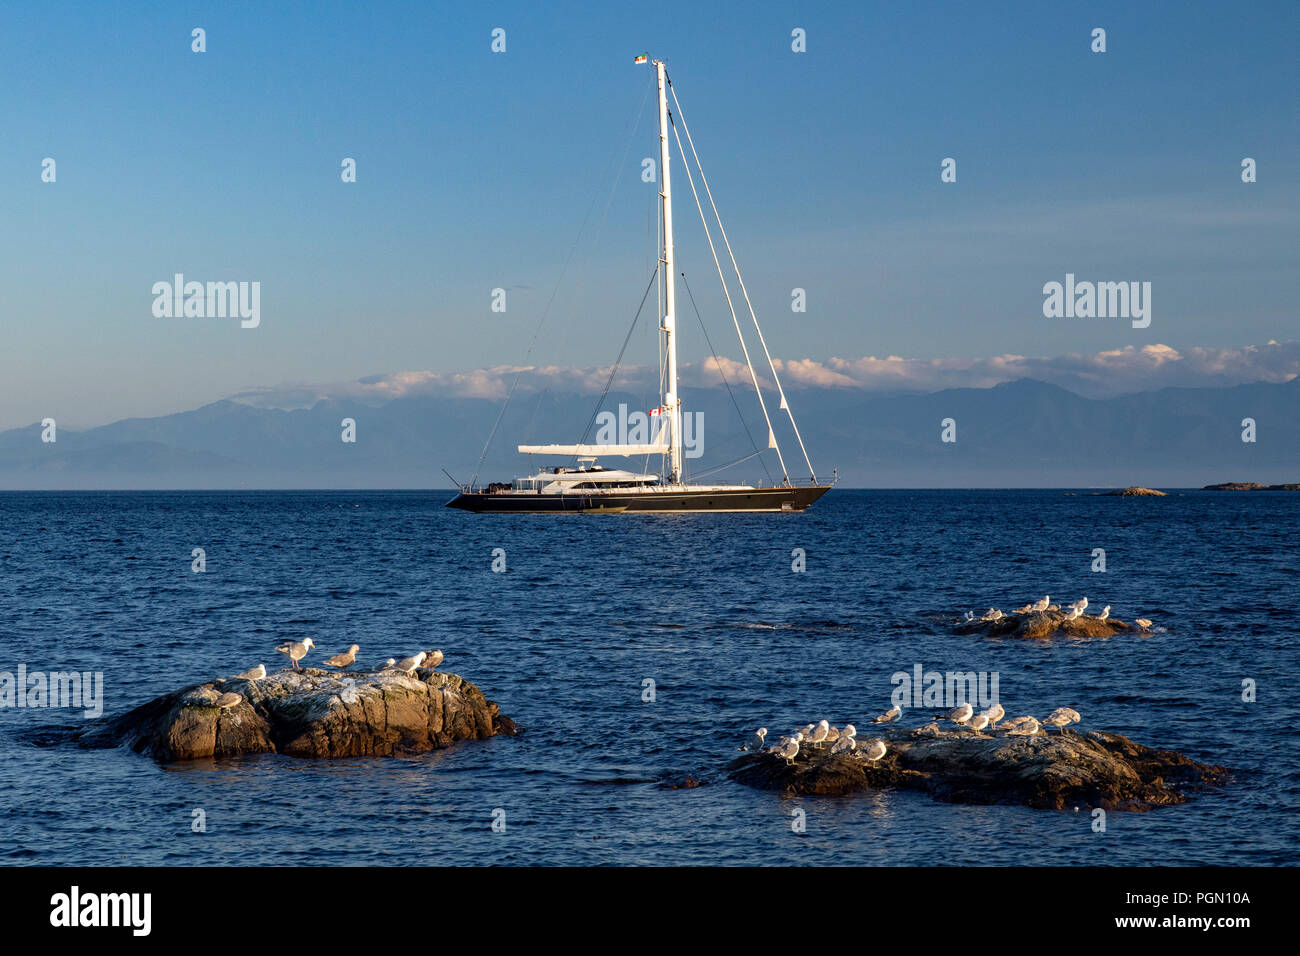 Luxury Sailboat anchored off Cattle Point in Uplands Park, Oak Bay near Victoria, Vancouver Island, British Columbia, Canada Stock Photo